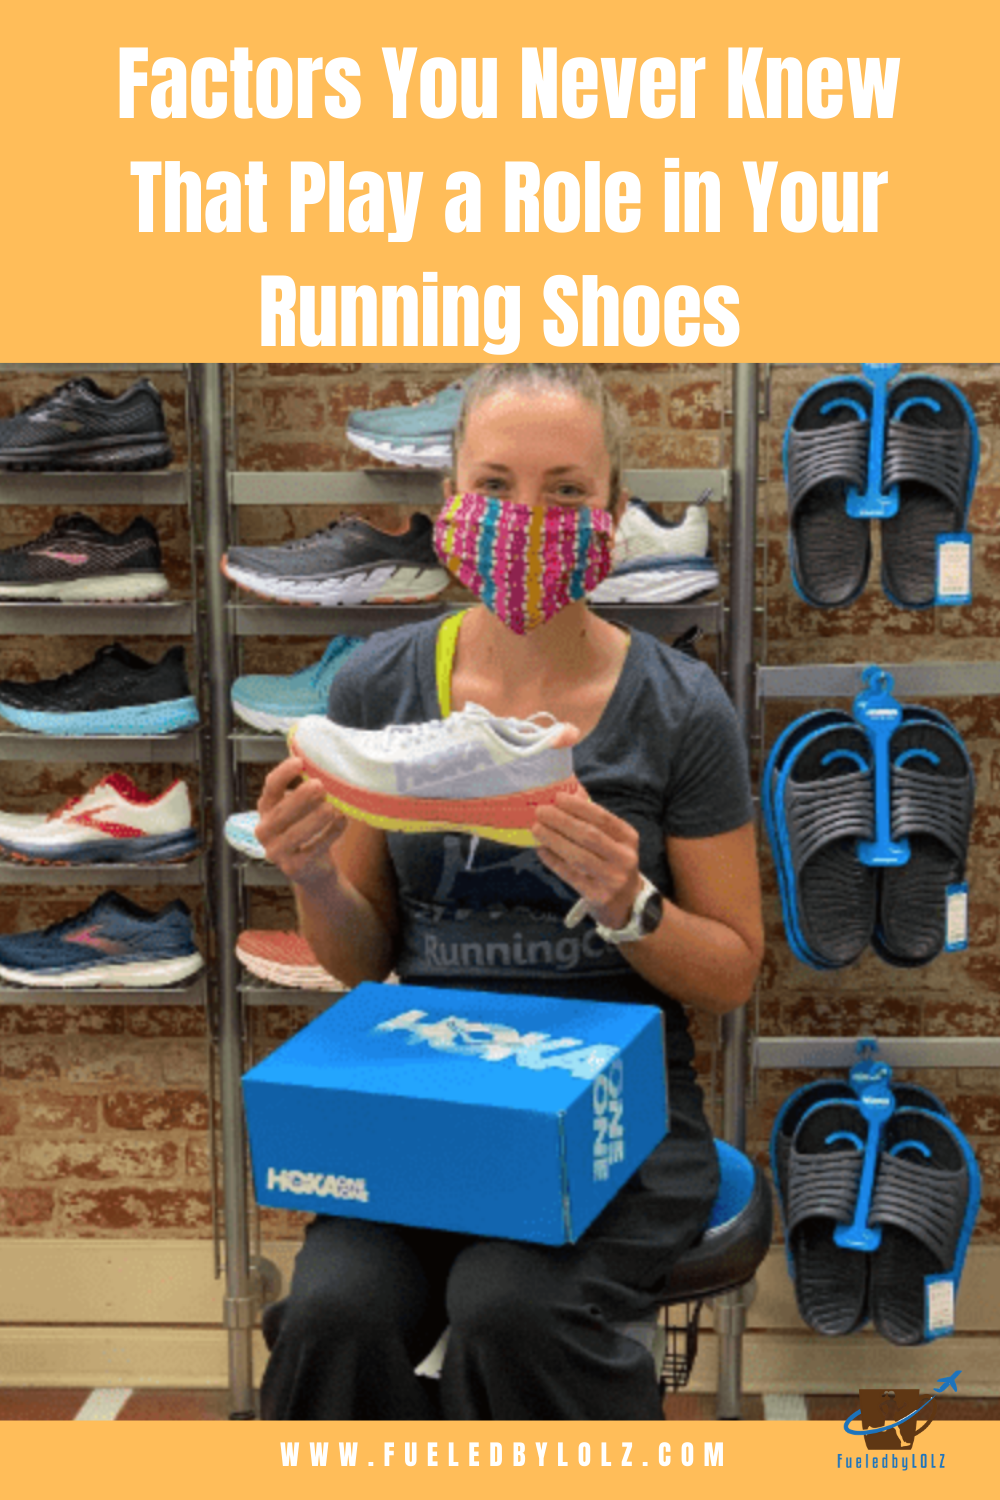 Factors You Never Knew That Play a Role in Your Running Shoes